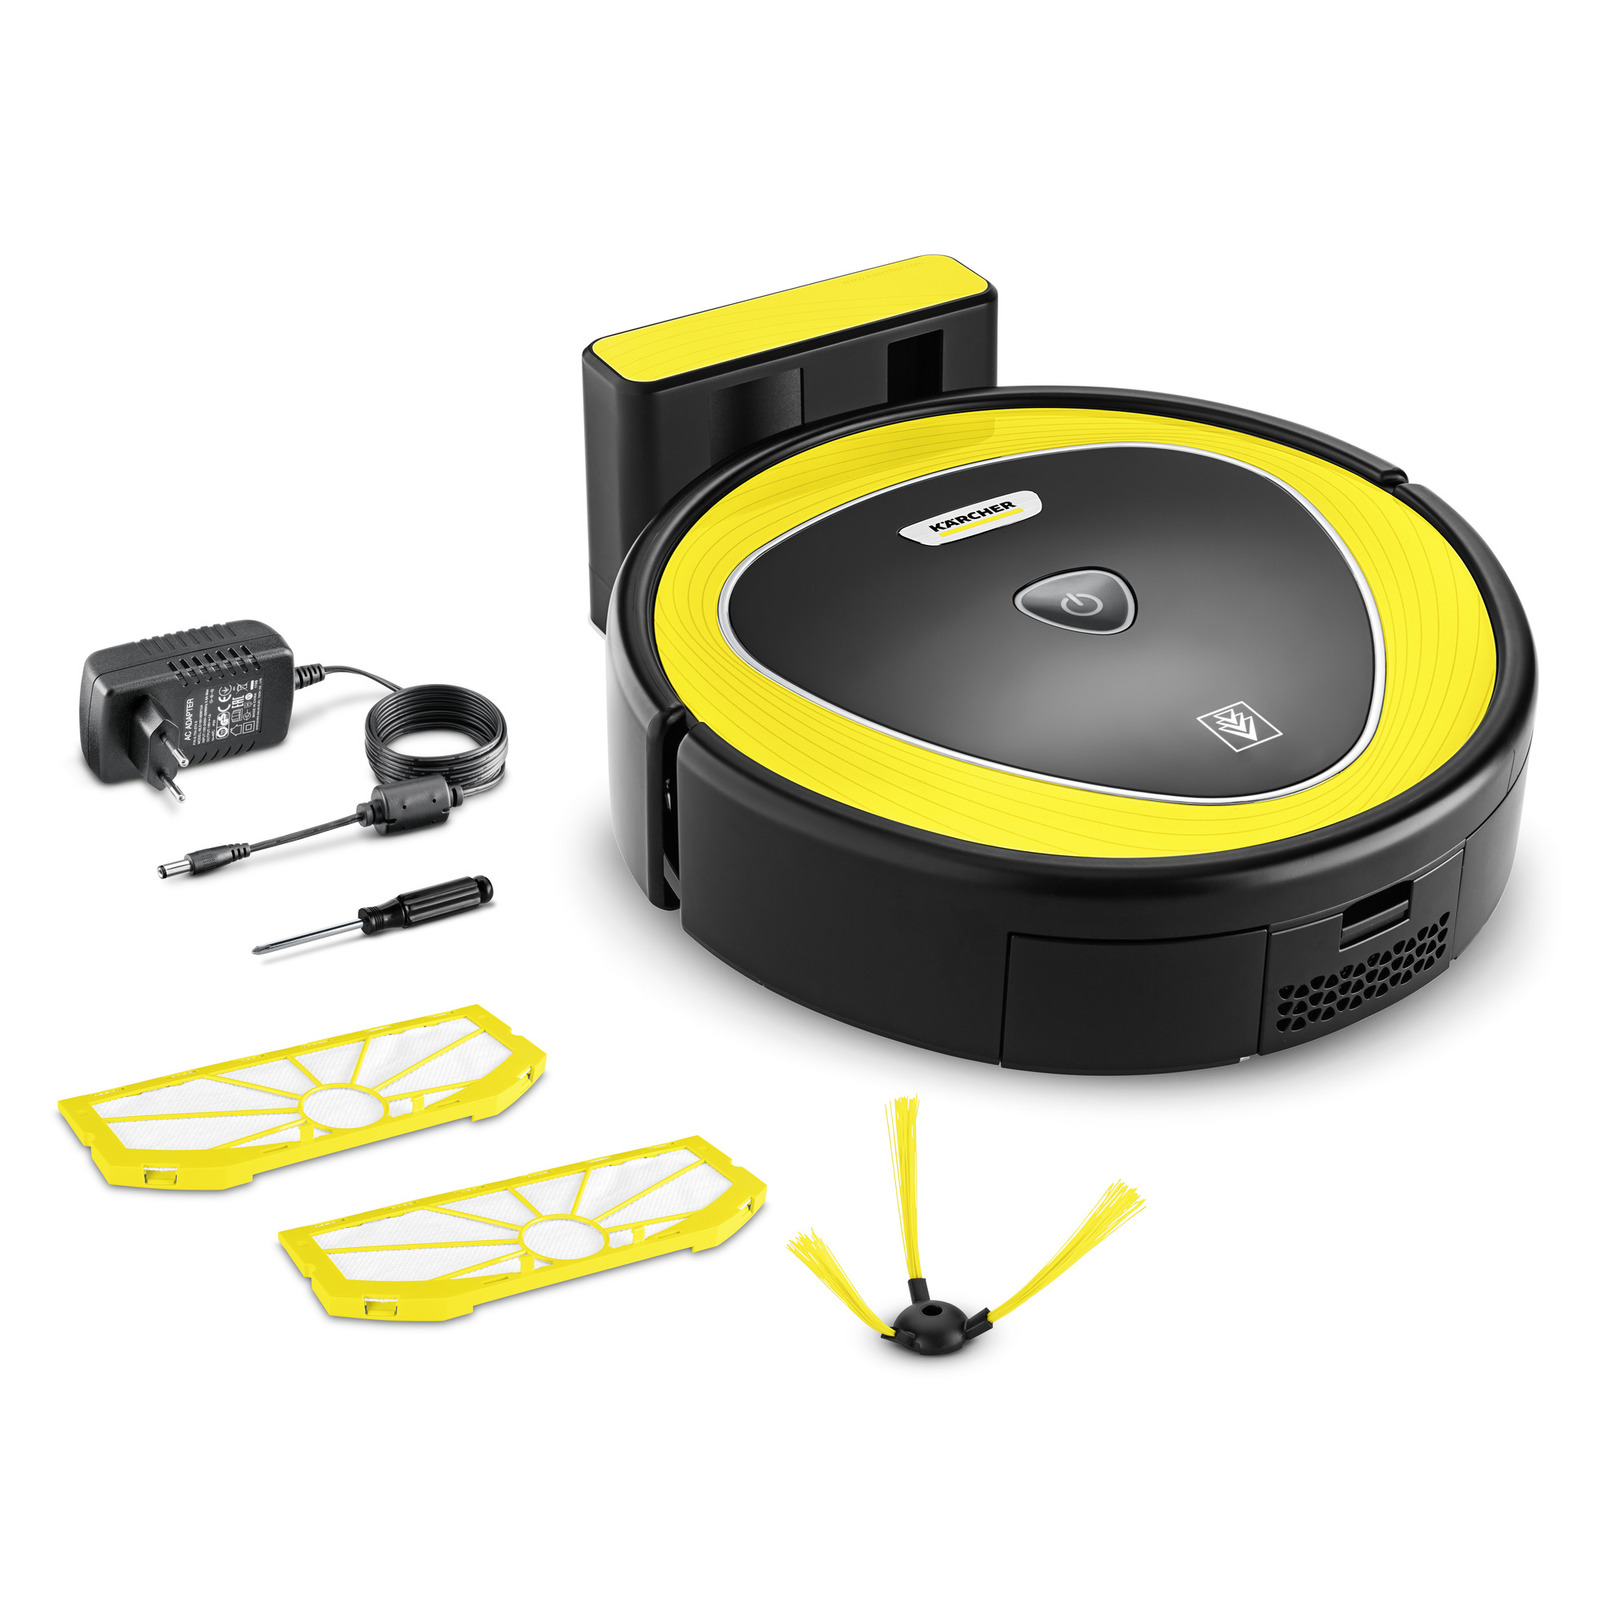 RC 3 II Robocleaner 1.198-203.0 KARCHER - KARCHER PREMIER CENTER